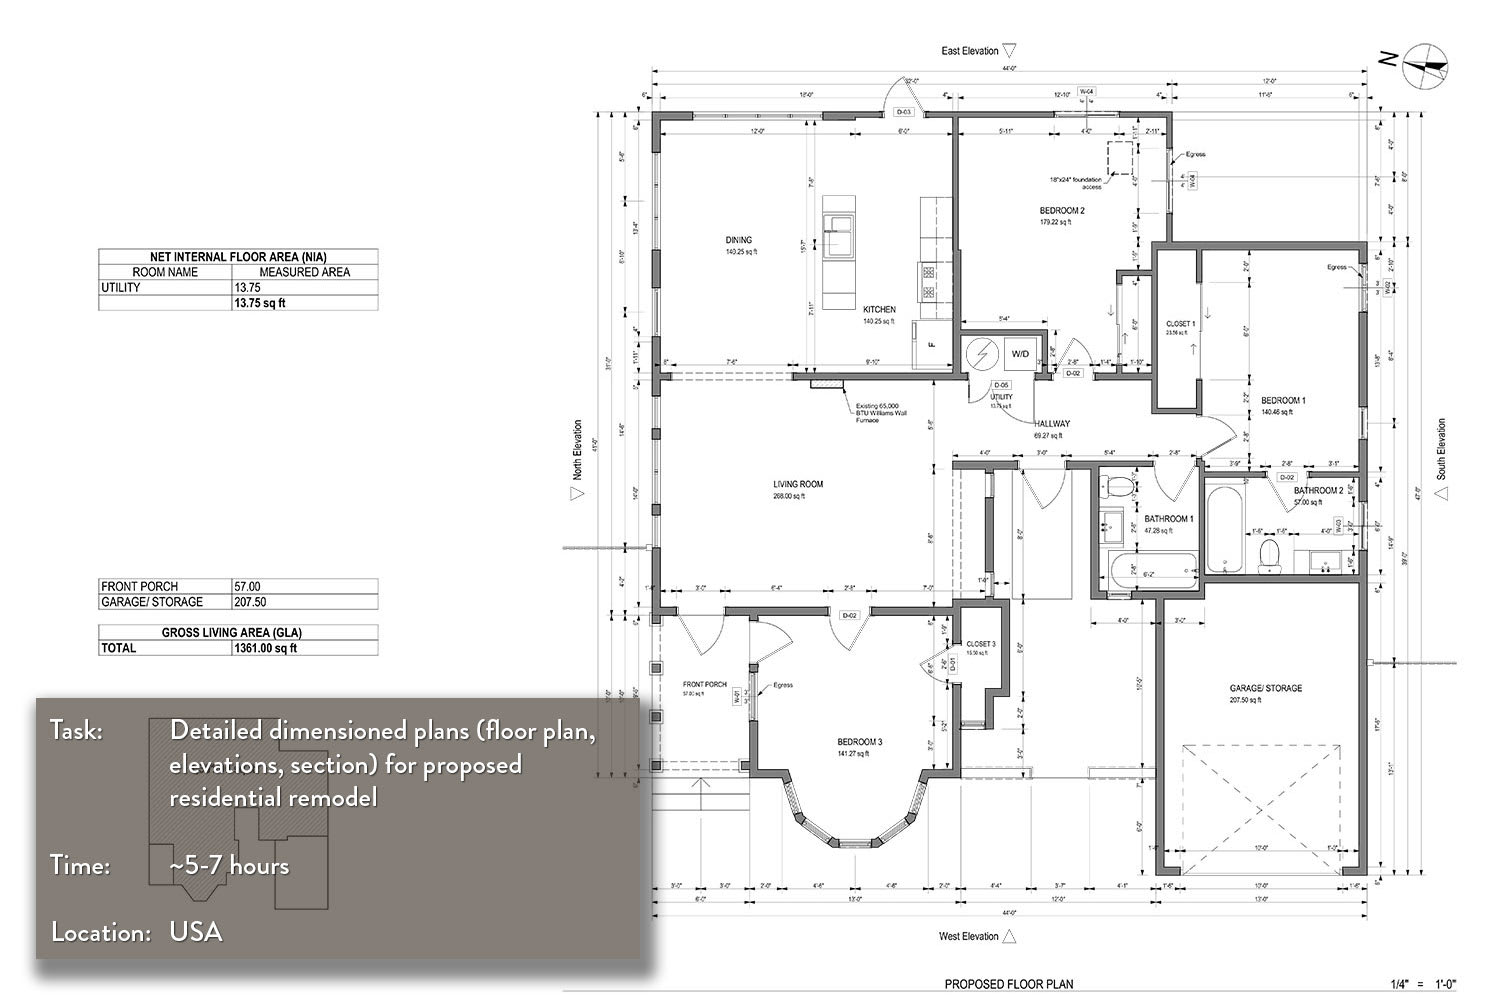 Draw an architectural floor plan by